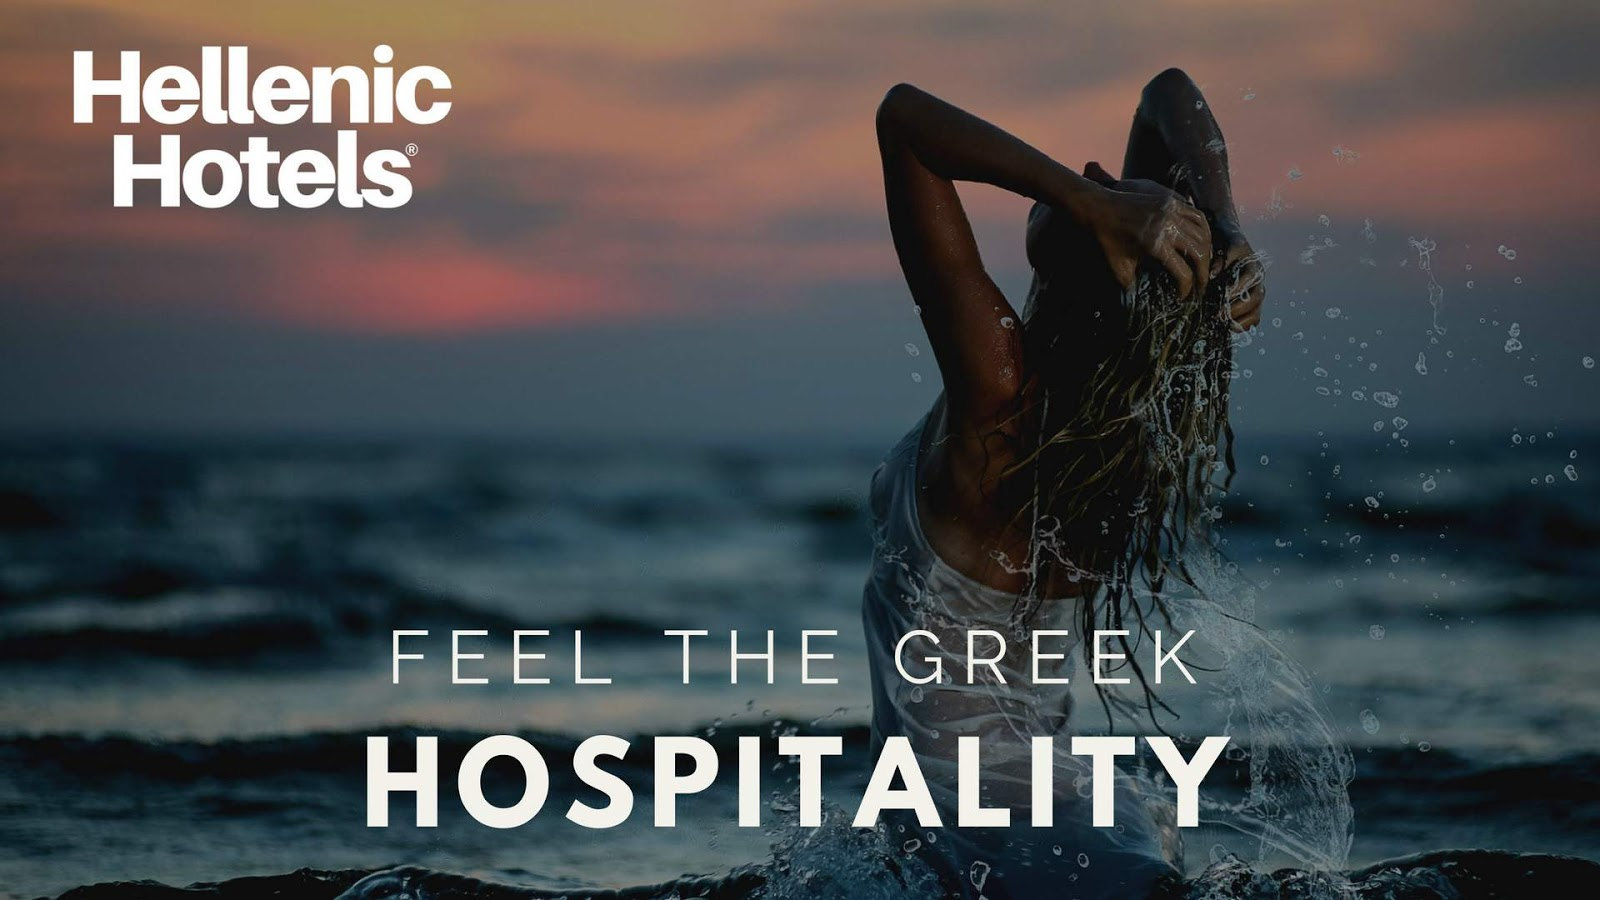 hellenic-hotels-travel-magazine